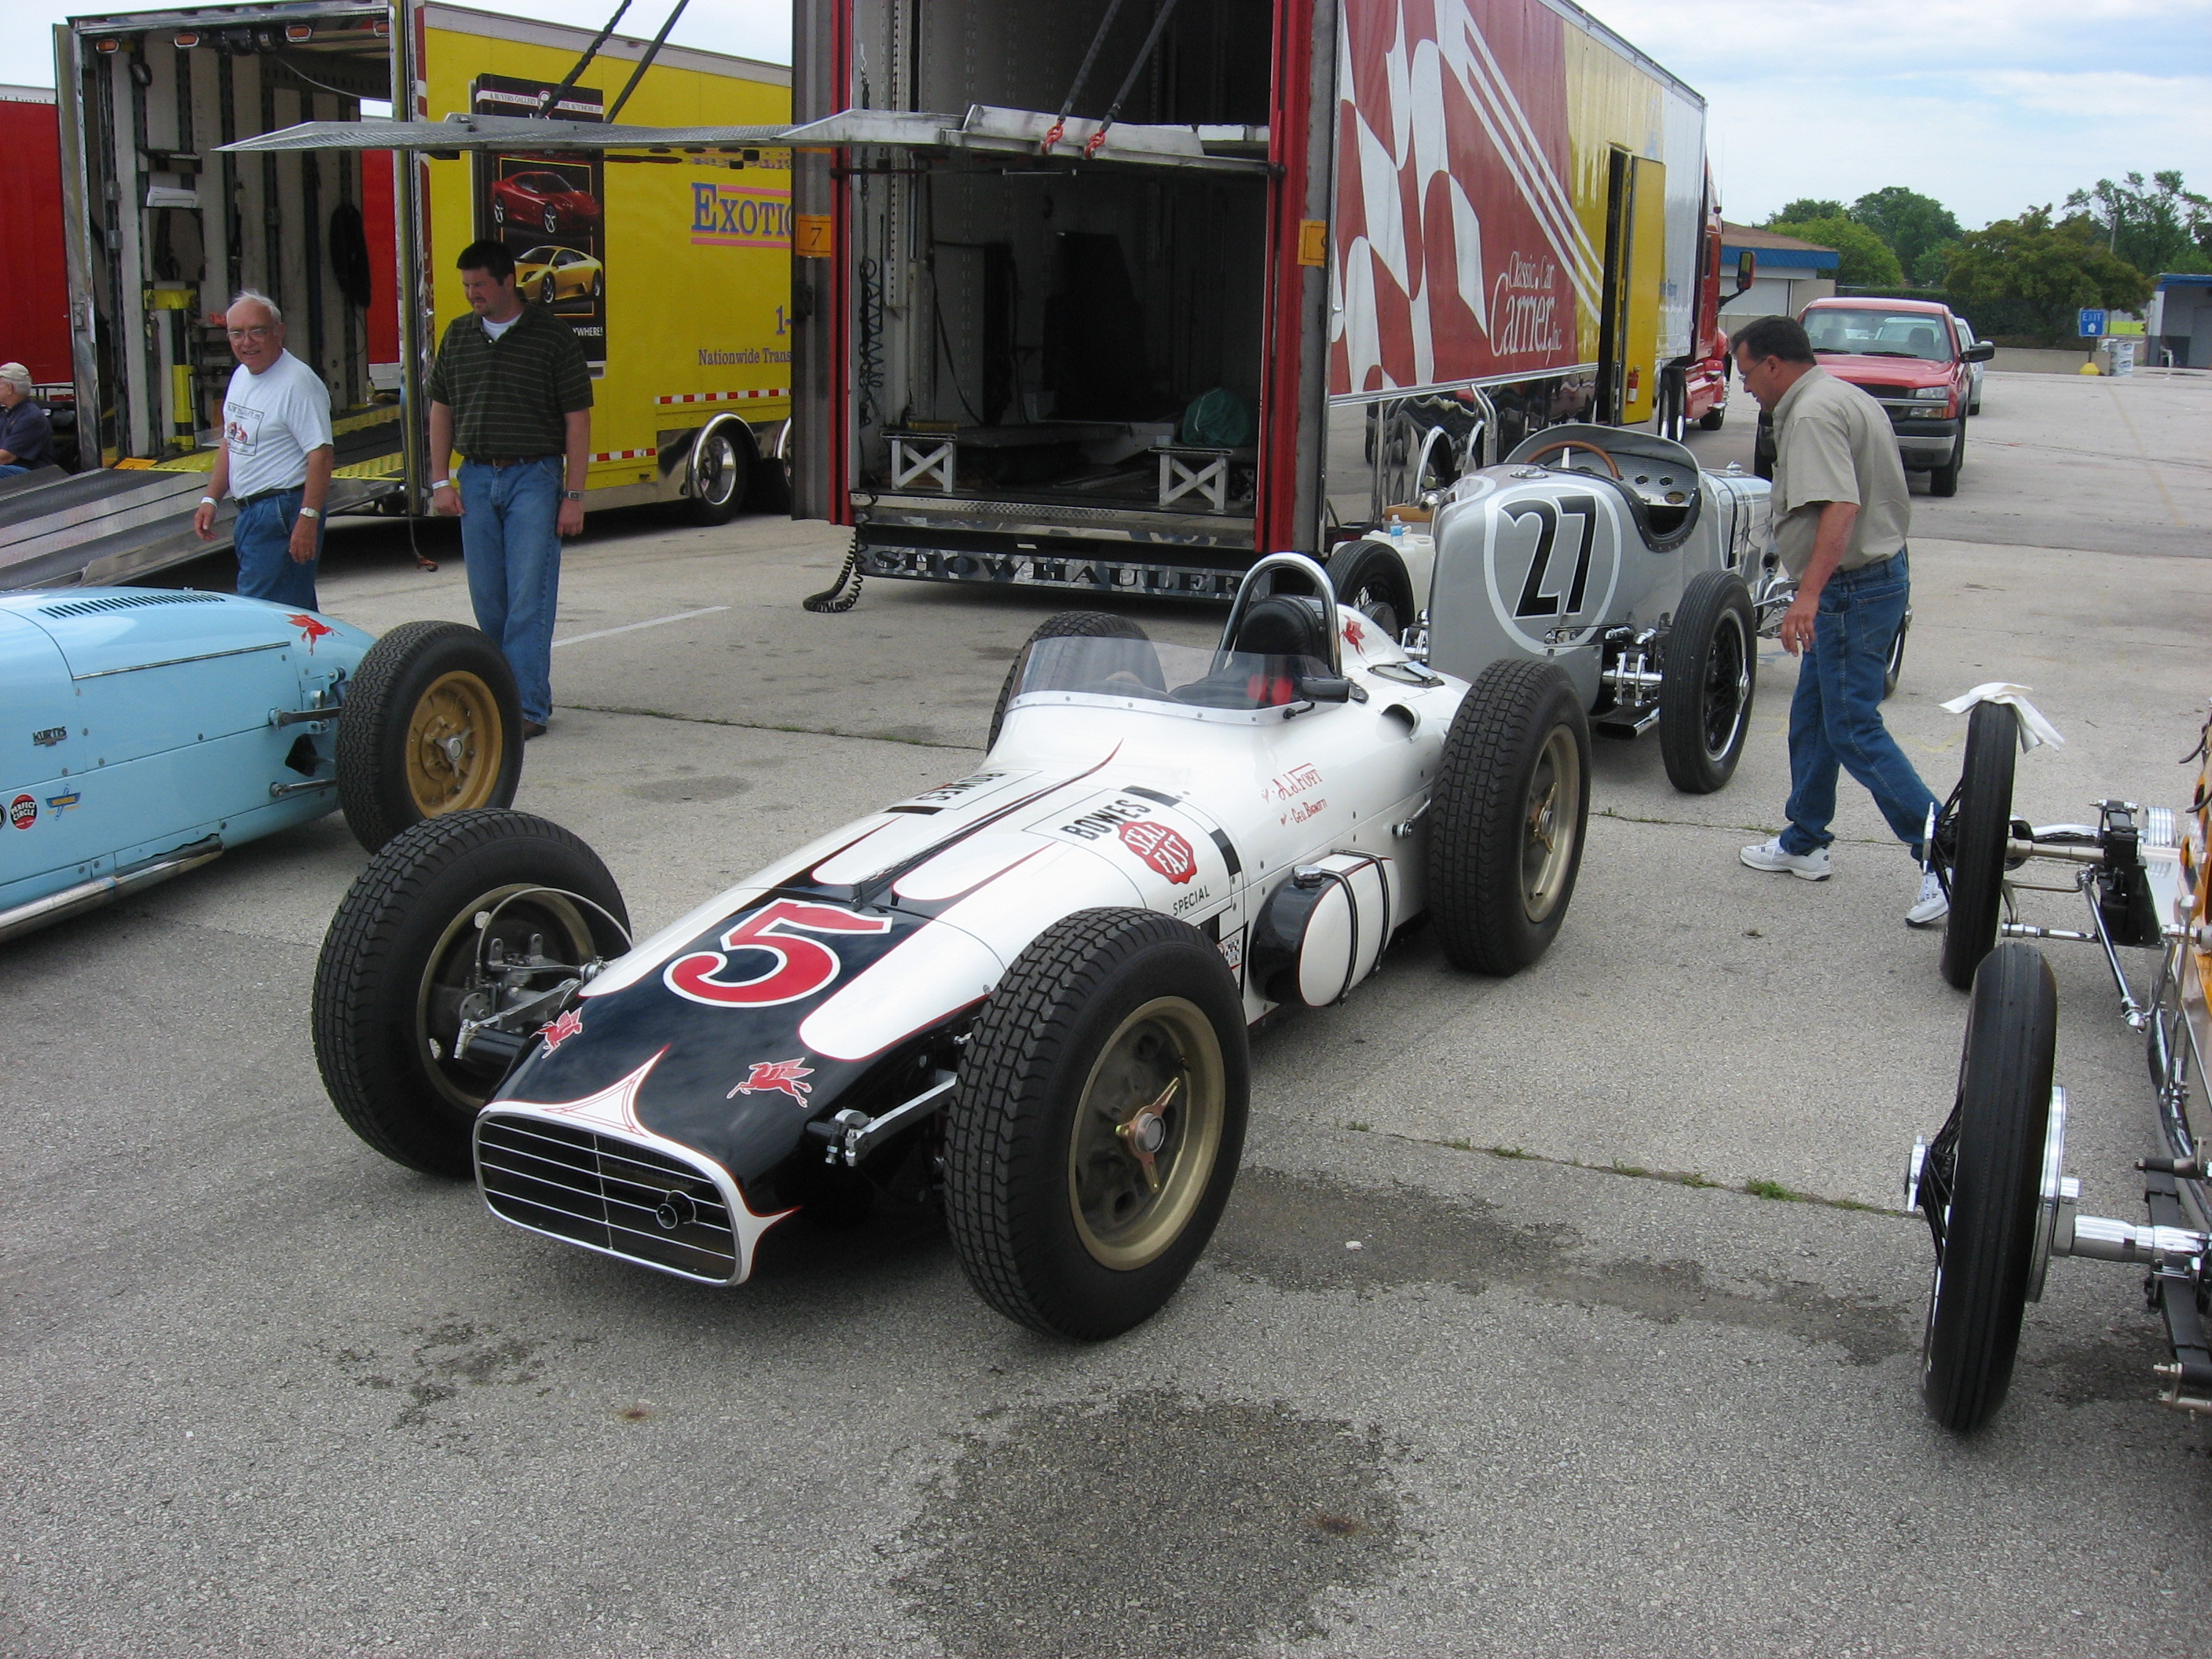 2008 Millers at Milwaukee Vintage Indy Car Event Photographs - The ...